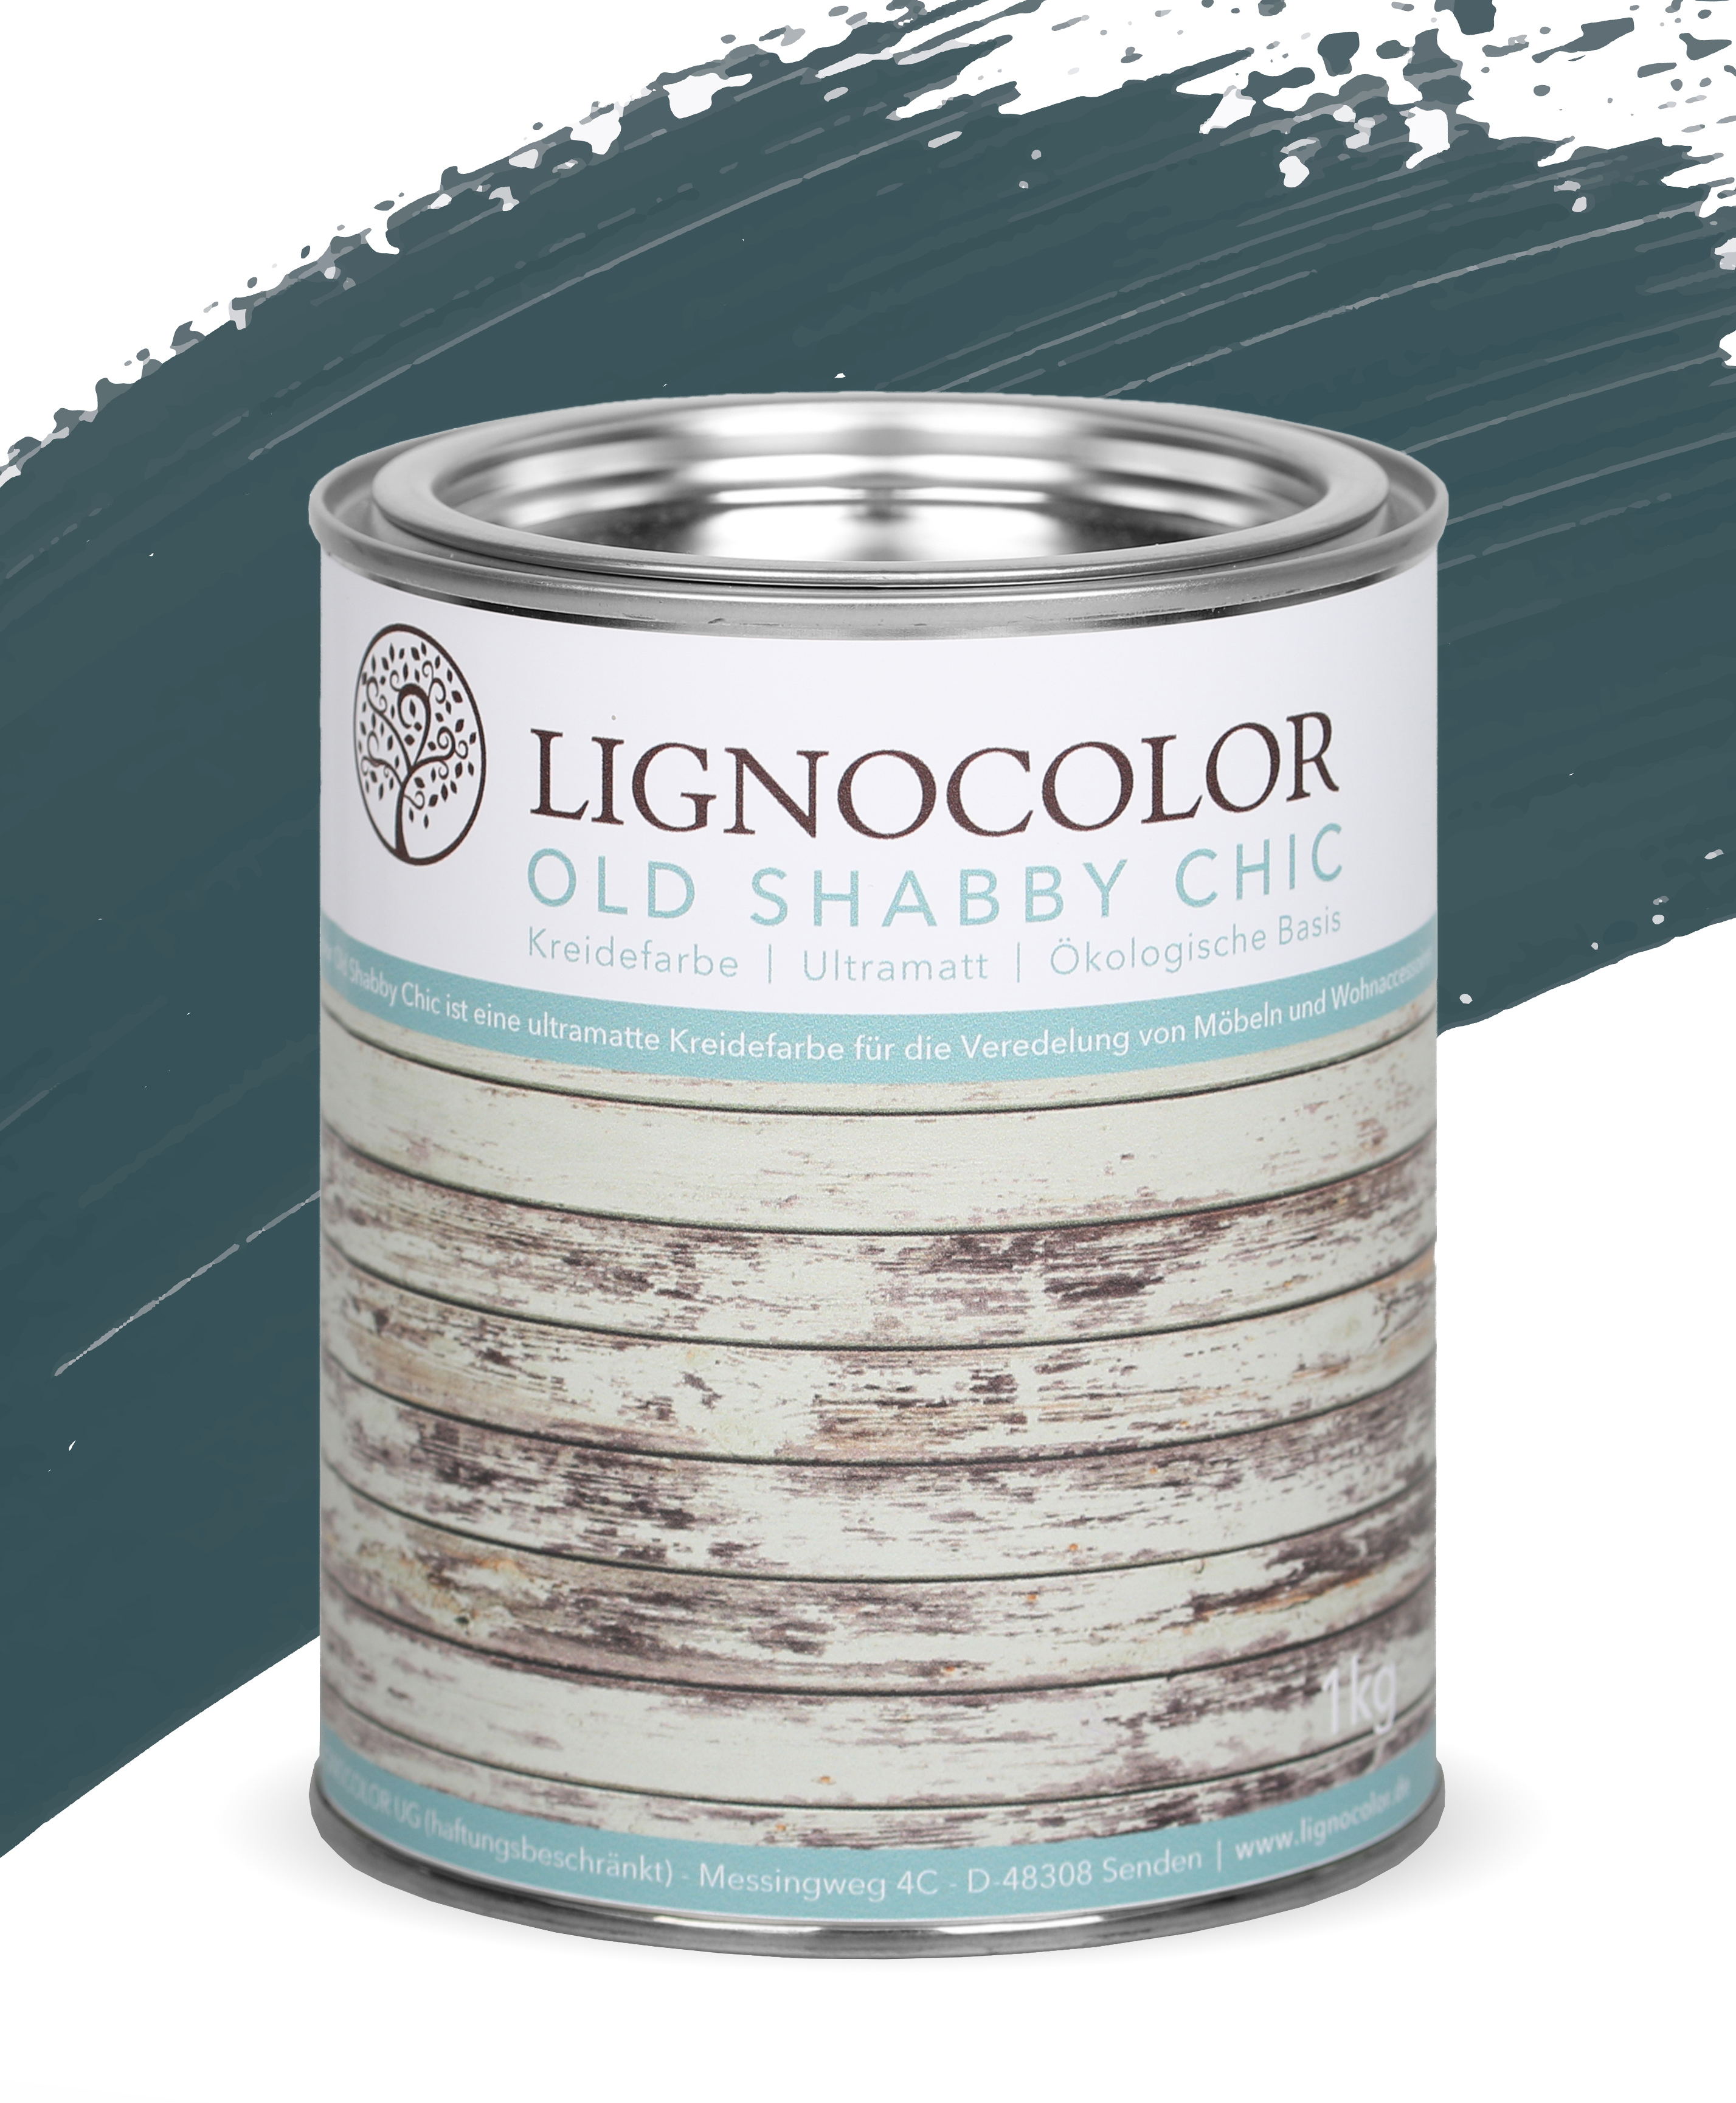 Lignocolor Old Shabby Chic 1kg_Deep Sea